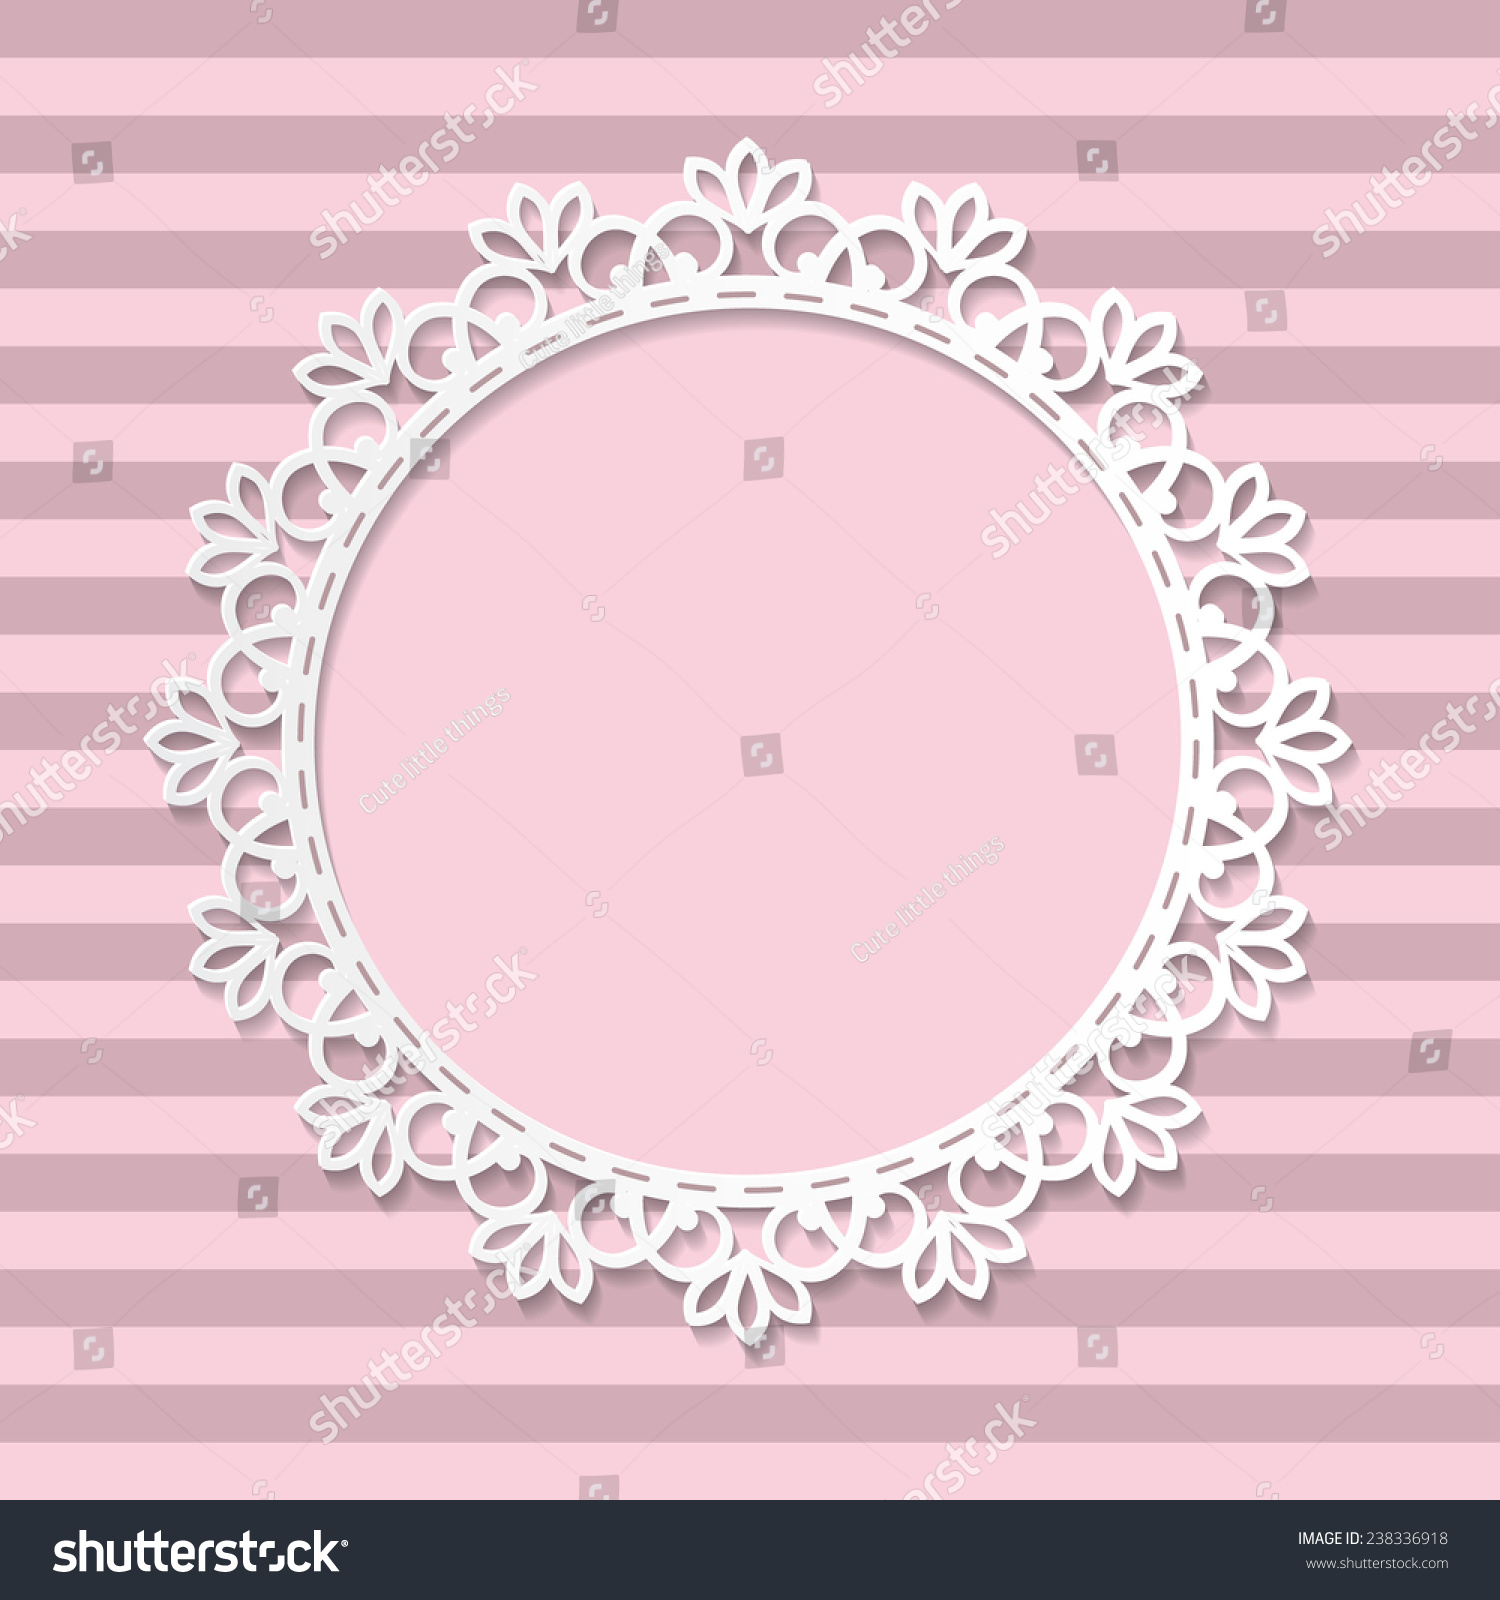 Vector round frame with pink flowers on white background in pastel - Cute Paper Cut Photo Frame For Baby Girl On Striped Seamless Background In Pastel Pink Colors